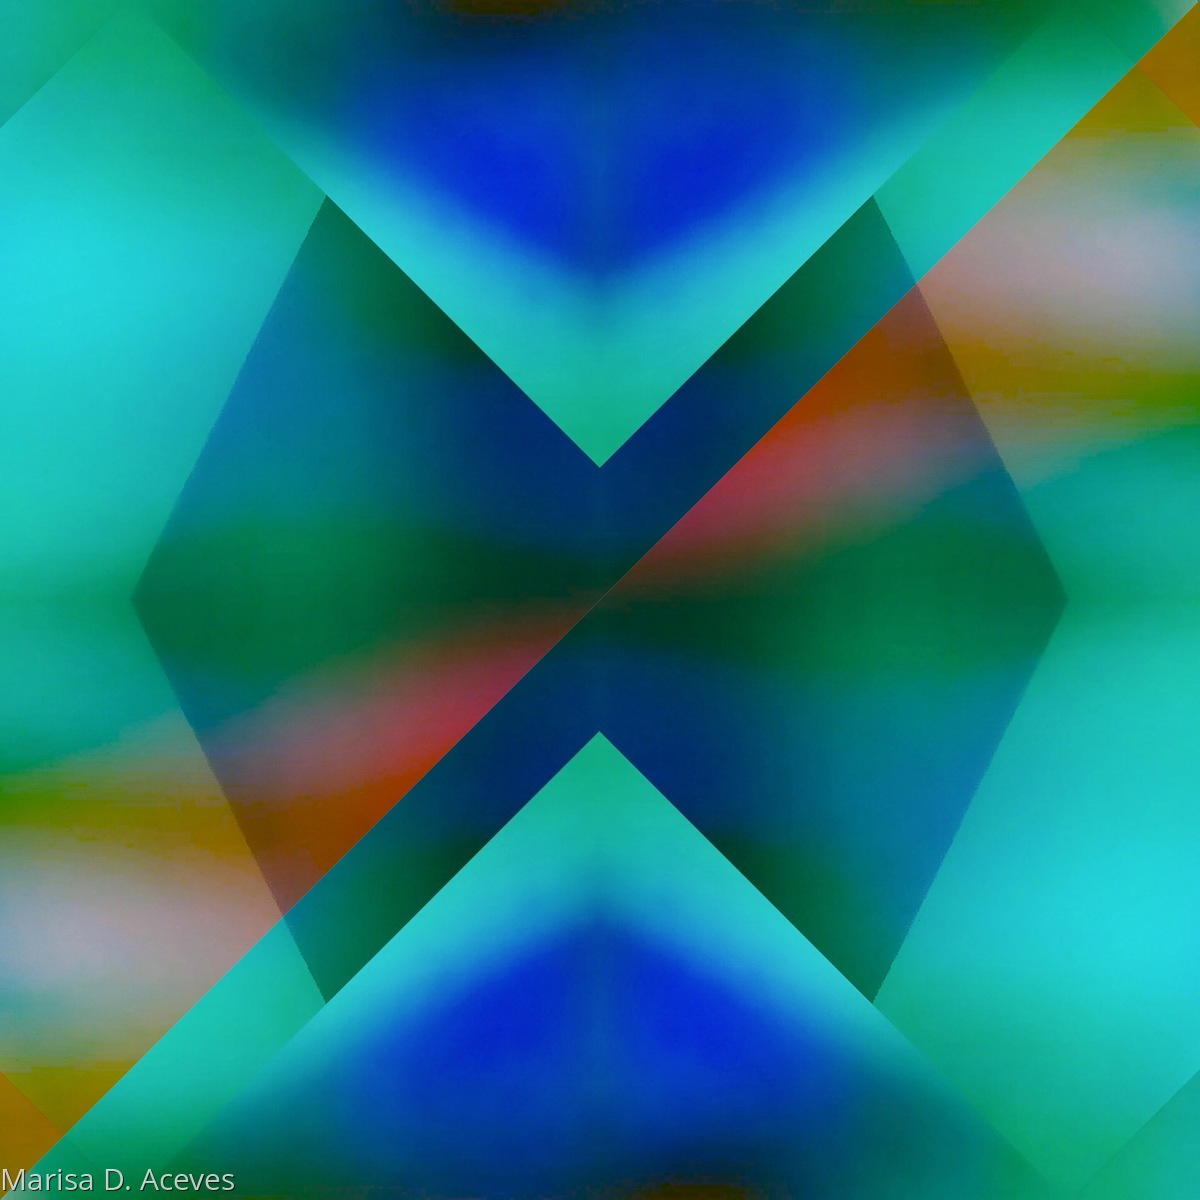 GEOMETRIC COLOR FIELD ABSTRACT ART: FLOATING BOW TIE PRISM  (large view)